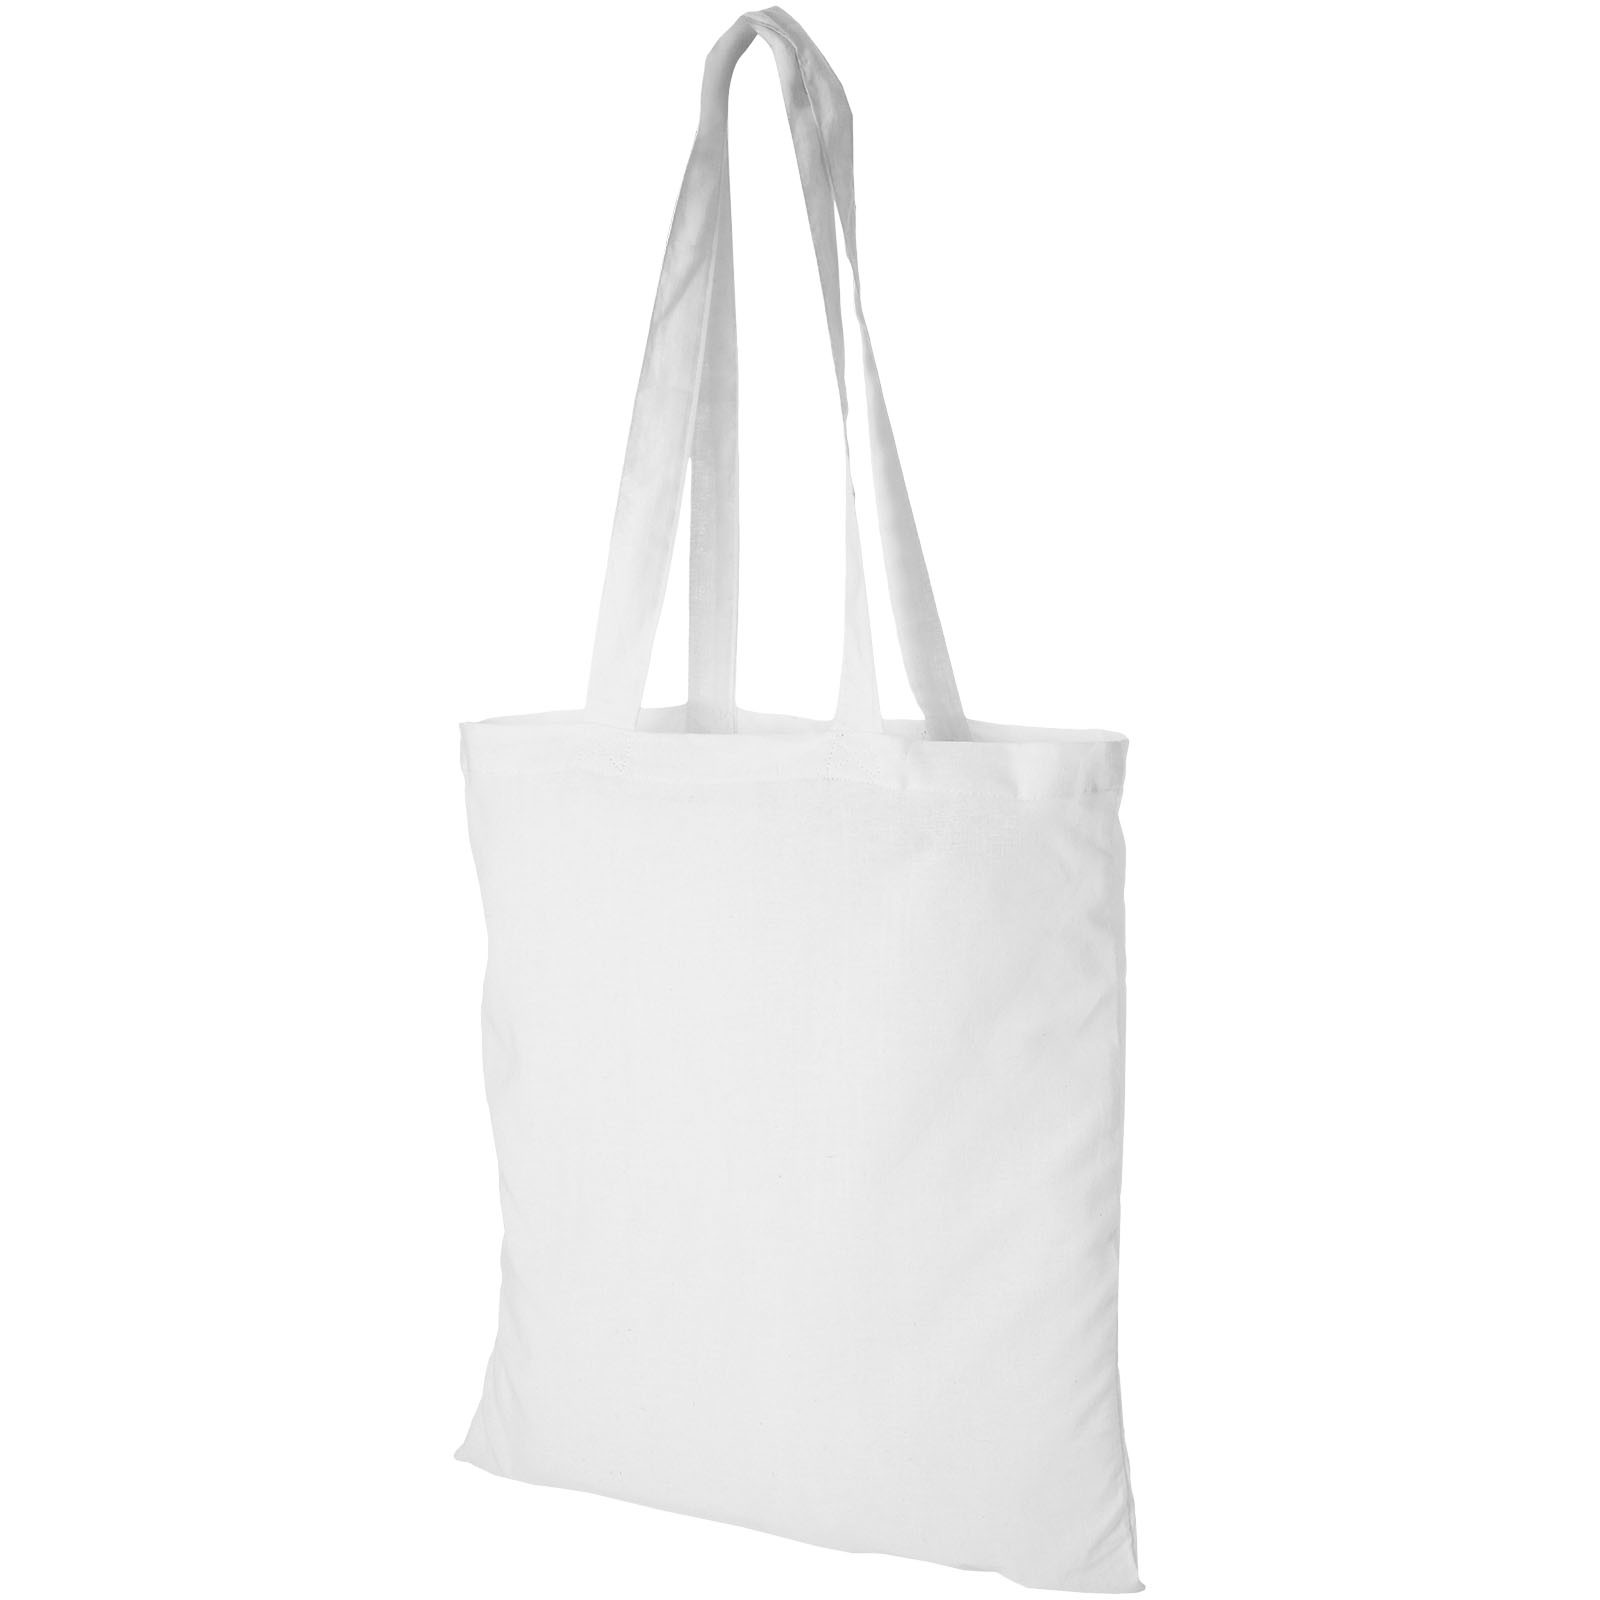 Madras 140 g/m² cotton tote bag - White